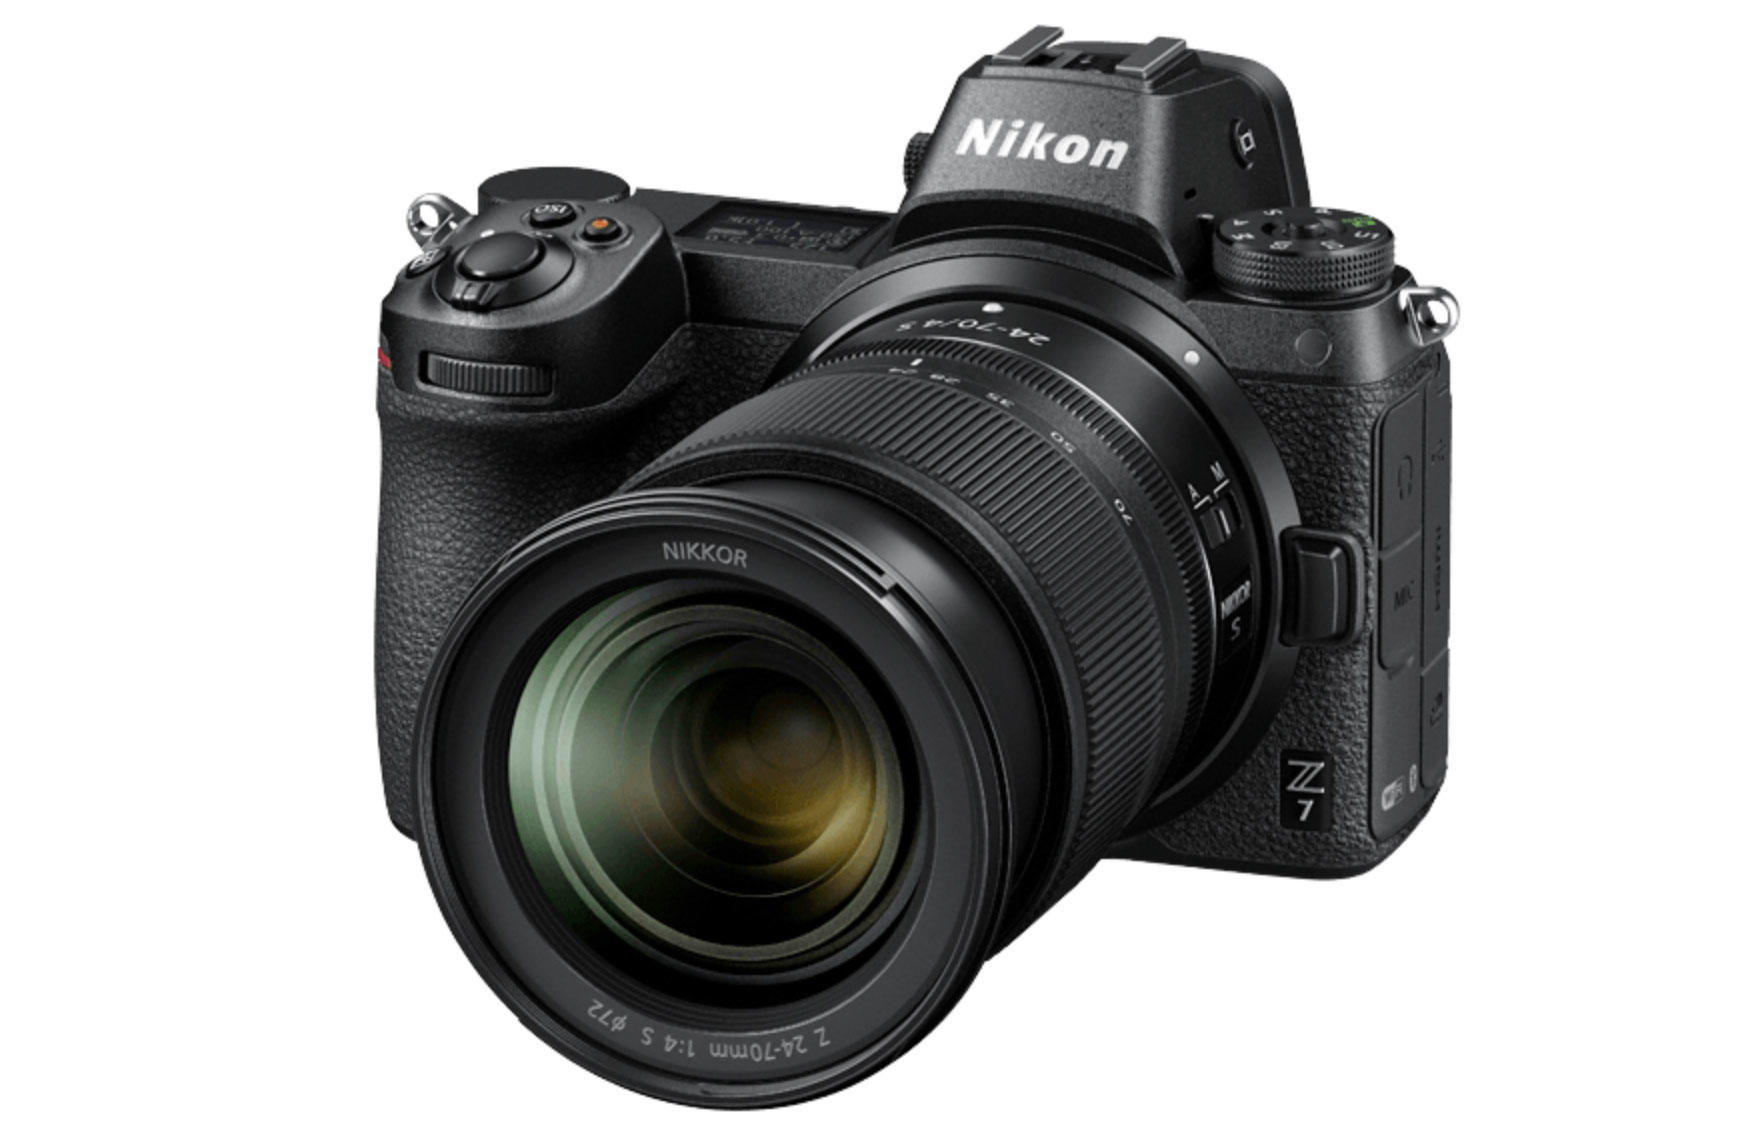 Nikon's $3,400 Z7 looks similar to traditional DSLR cameras but dumps the internal mirror in a move to a more purely digital design.